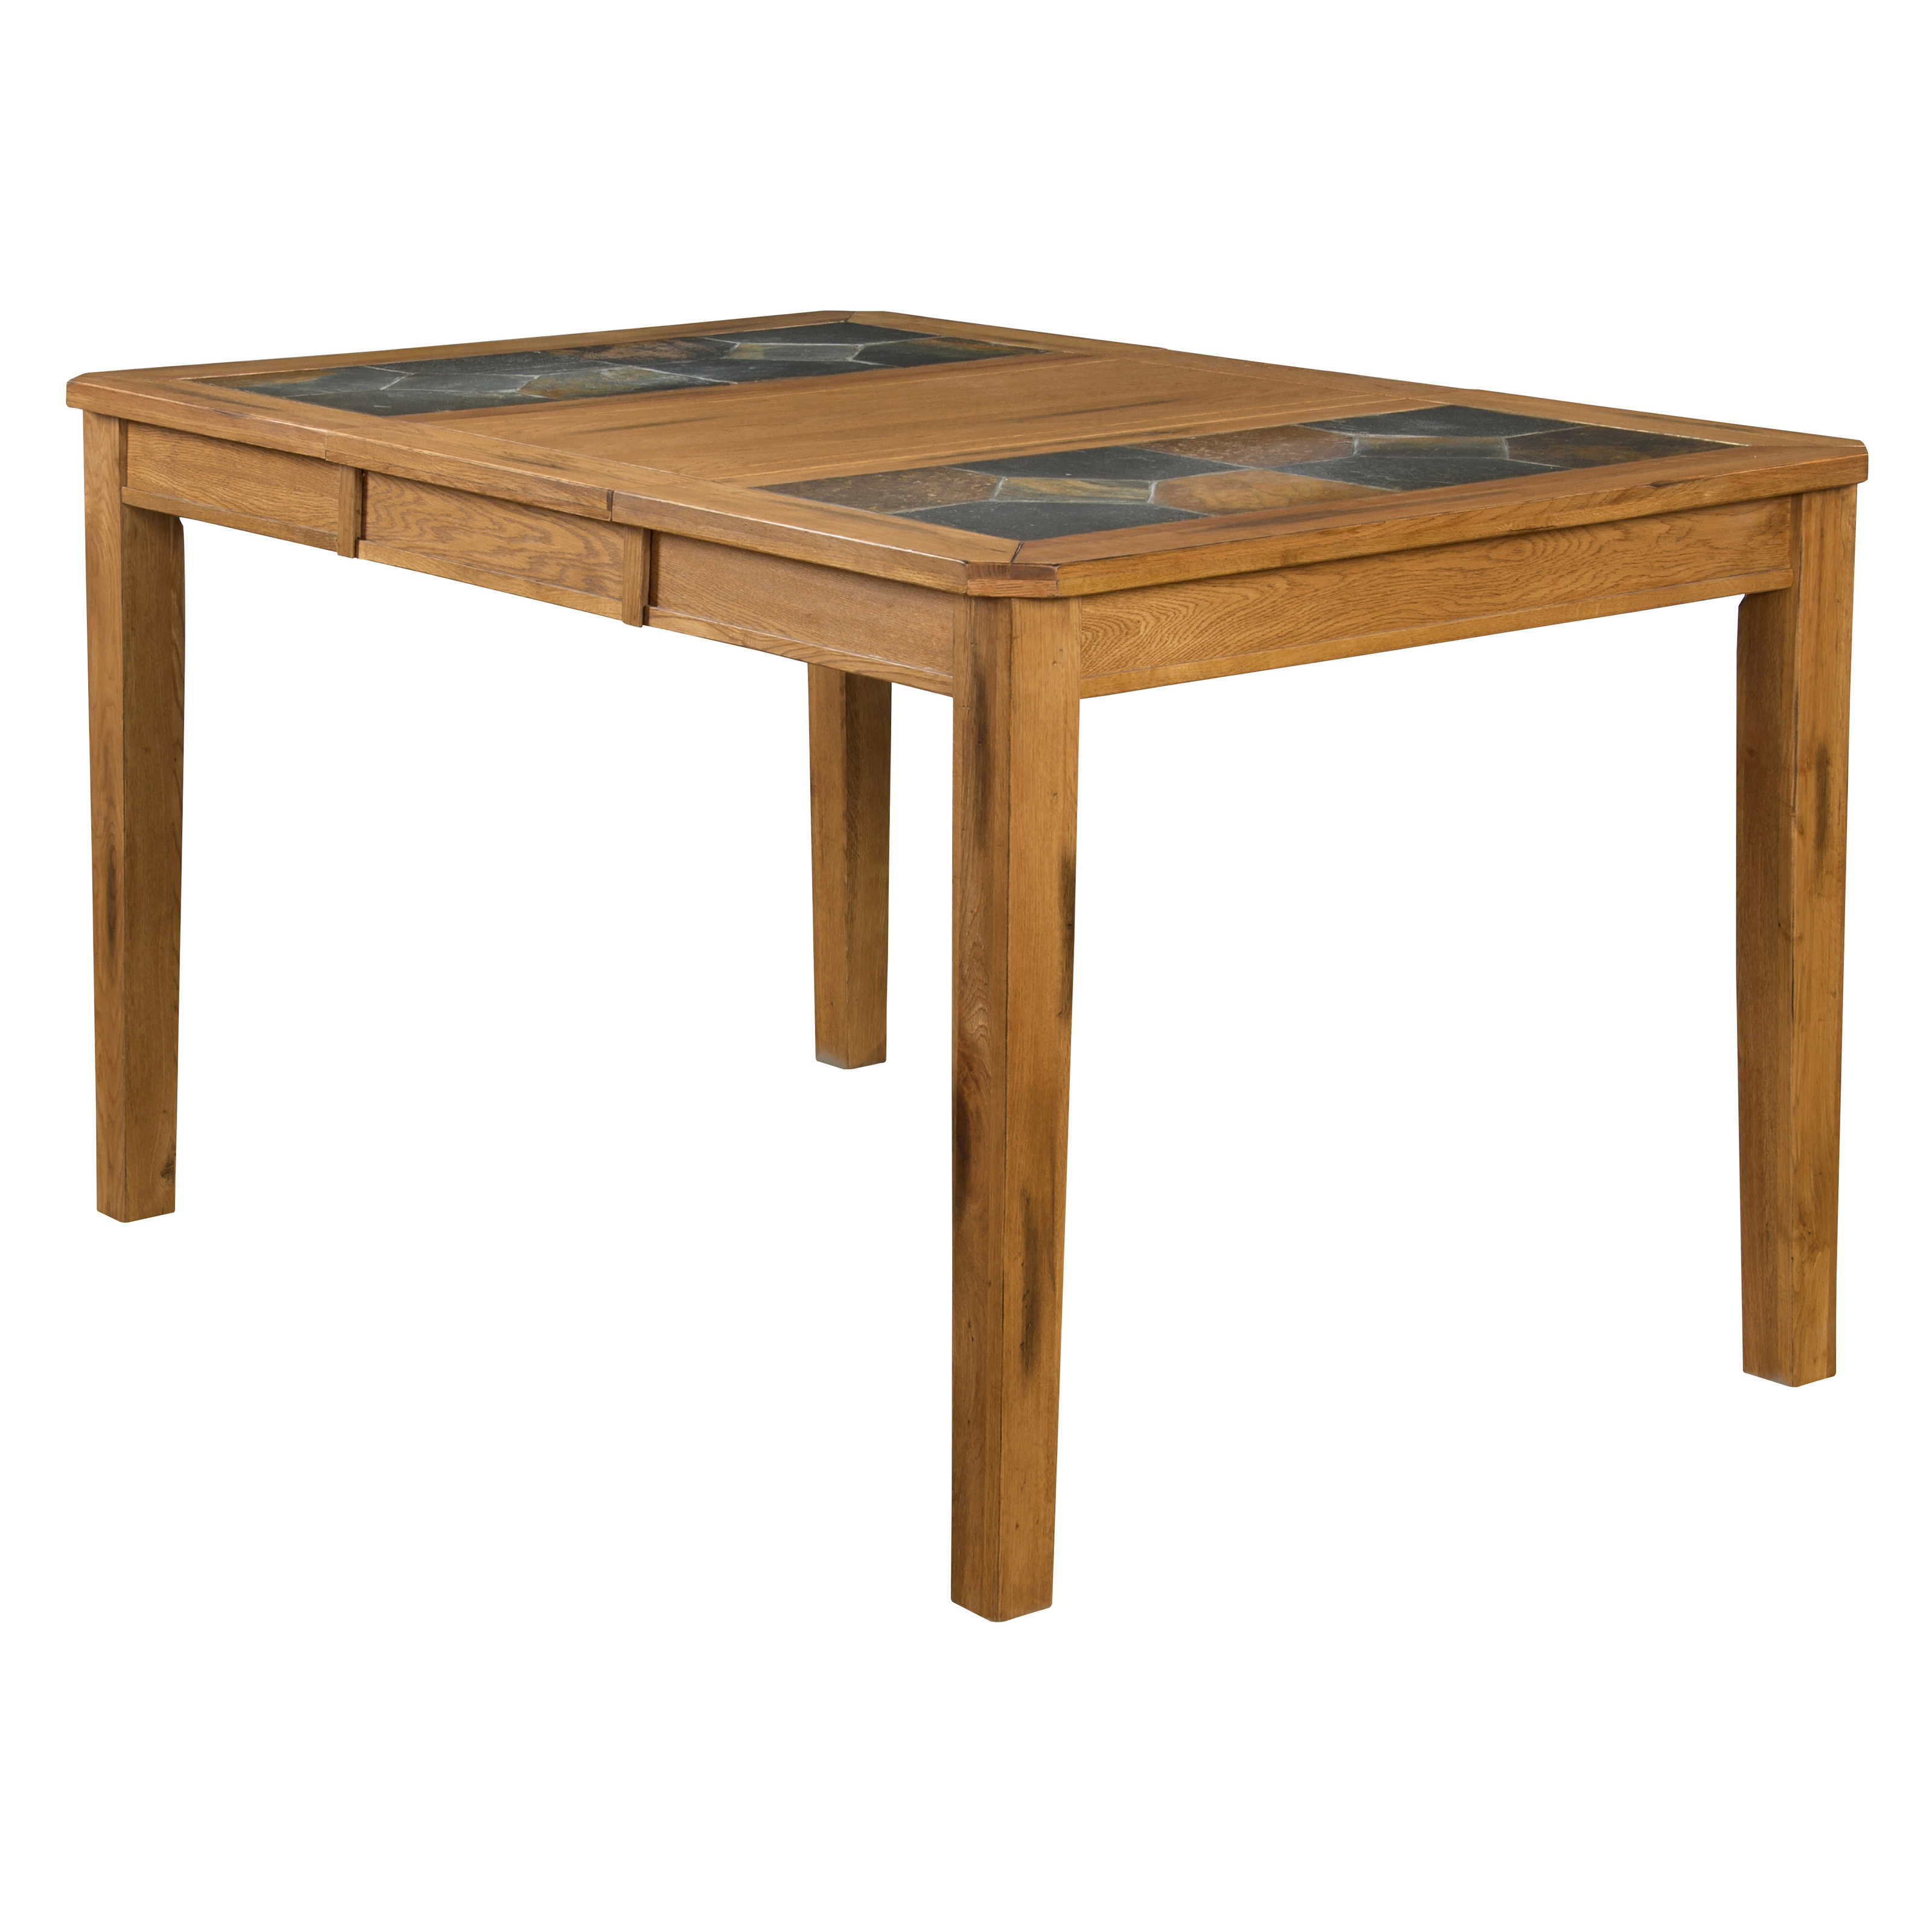 sunny designs sedona rectangular dining table with slate topm